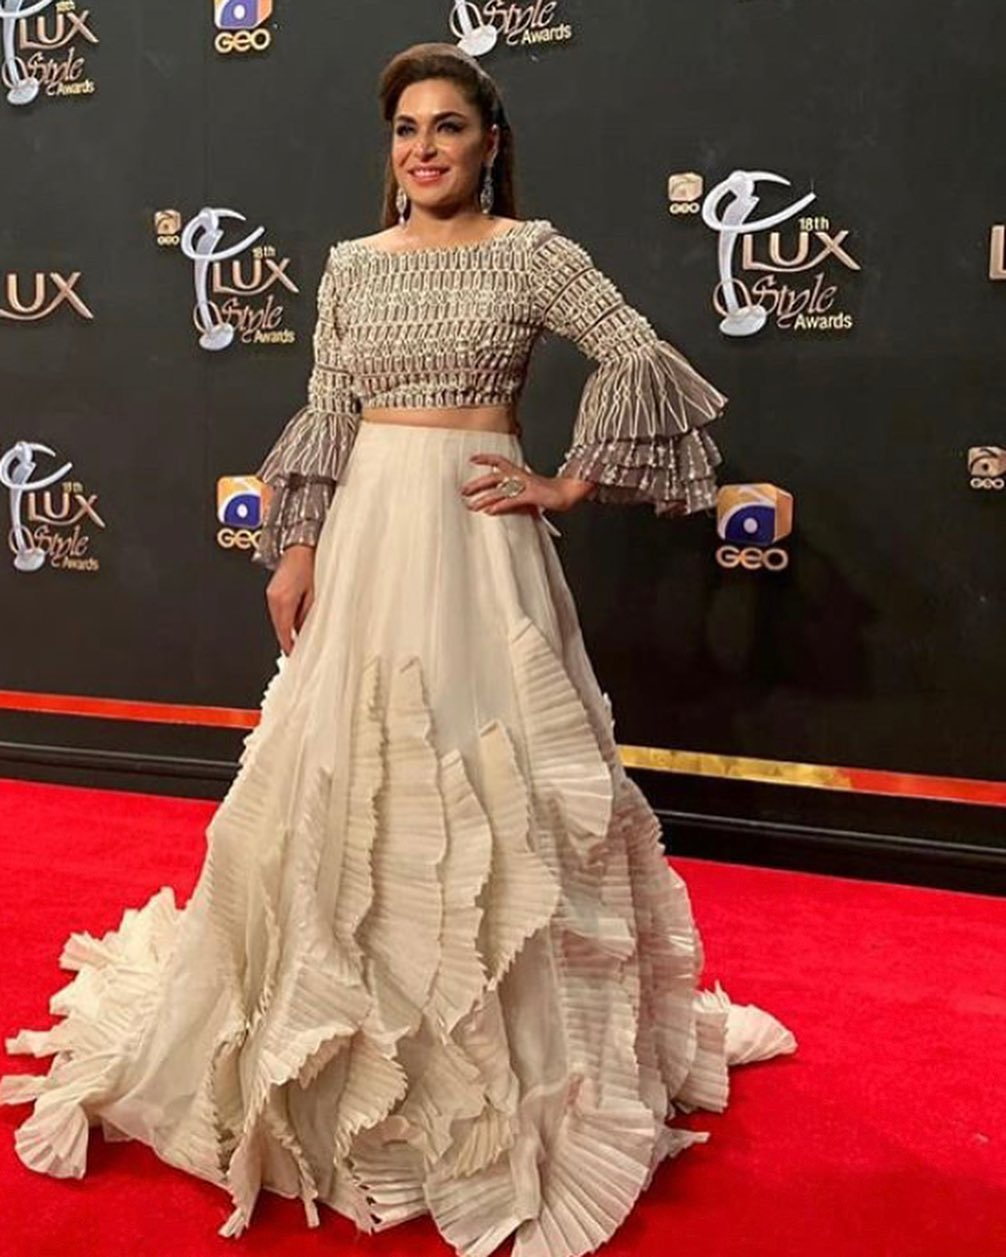 Here Glimpses from Lux Style Awards 2019